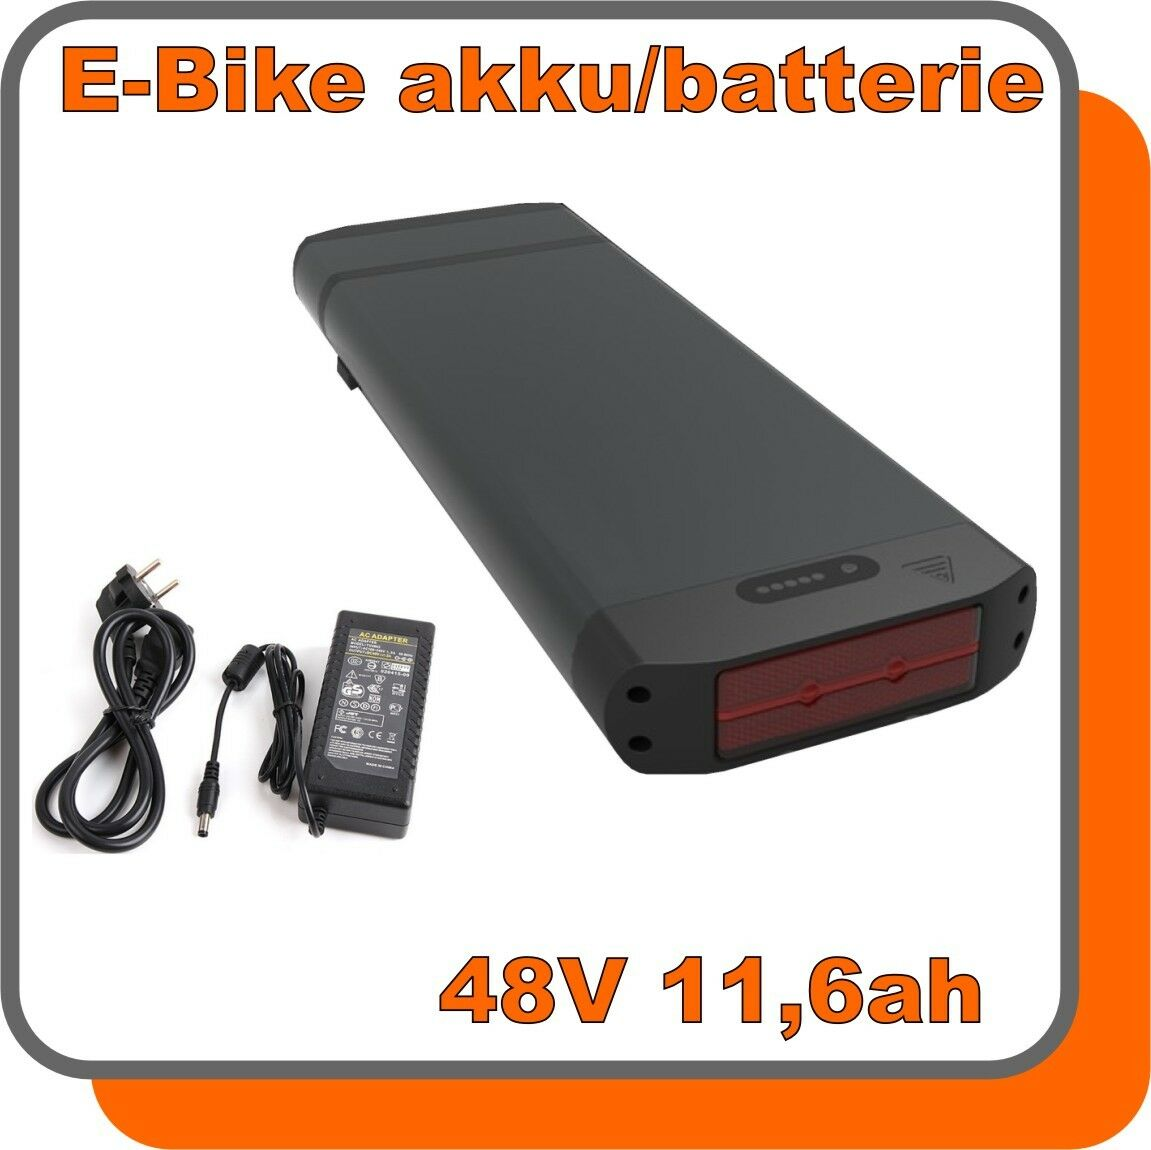 akku e bike 48v 11 6ah lithium ionen schwarz 557wh ladeger t led anzeige road eur 329 00. Black Bedroom Furniture Sets. Home Design Ideas